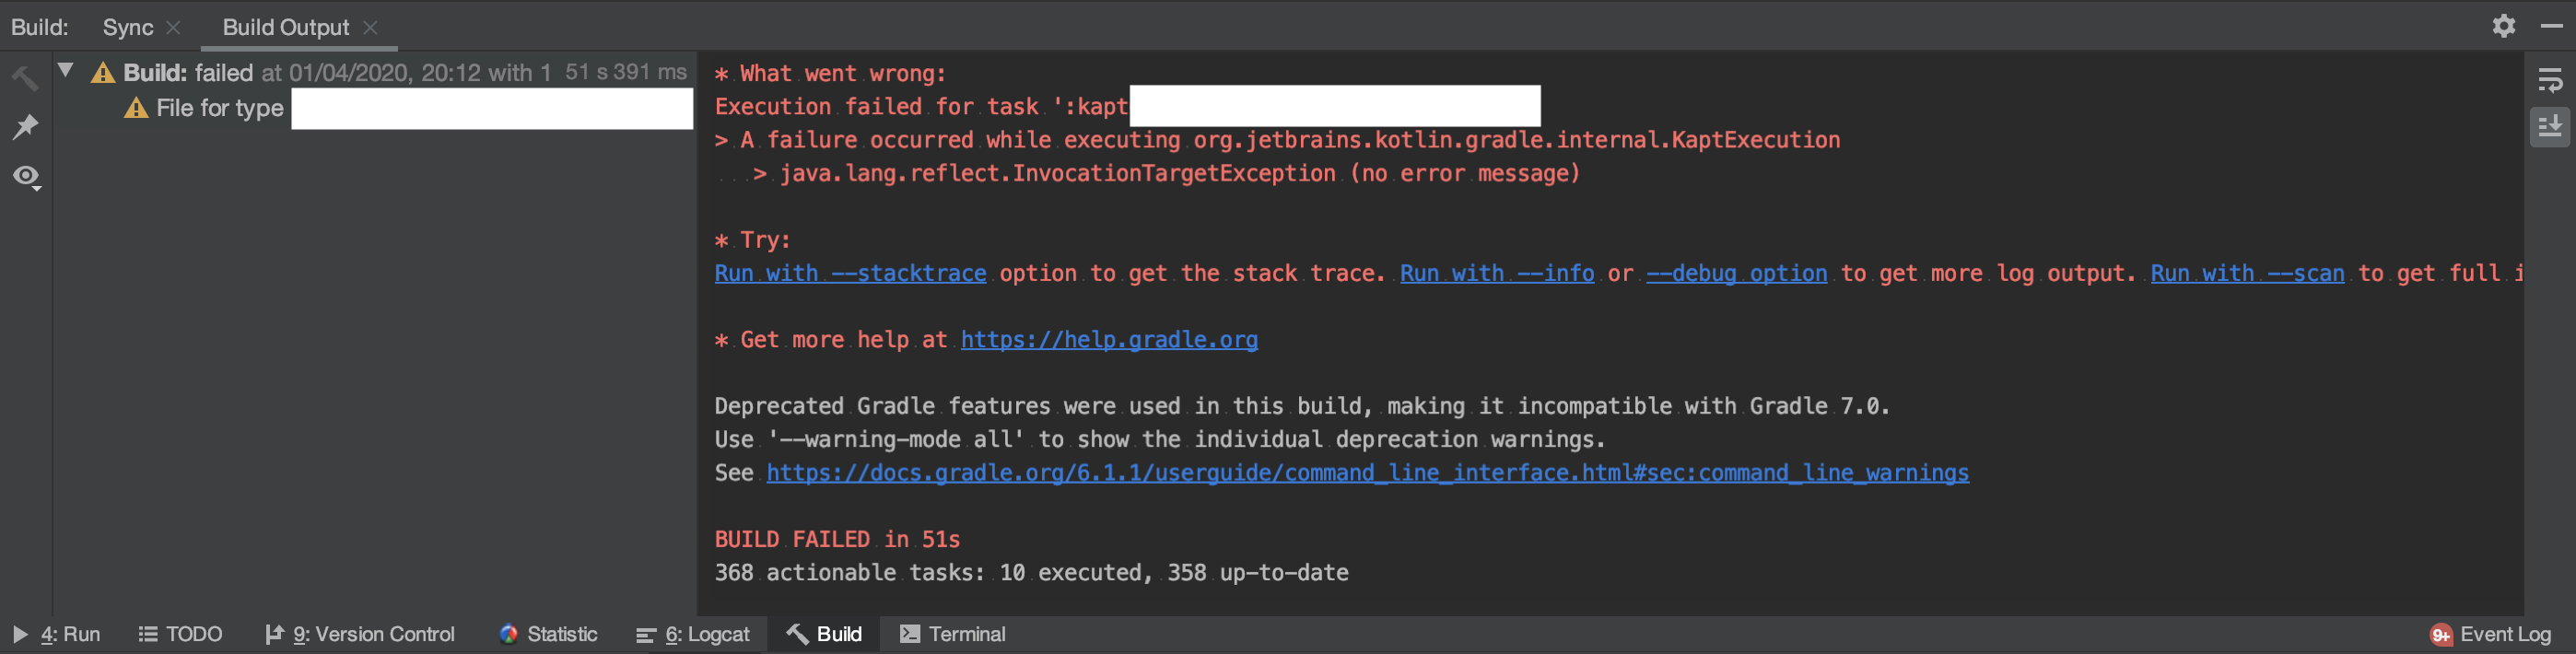 Build view on Android Studio (Kind == ERROR)